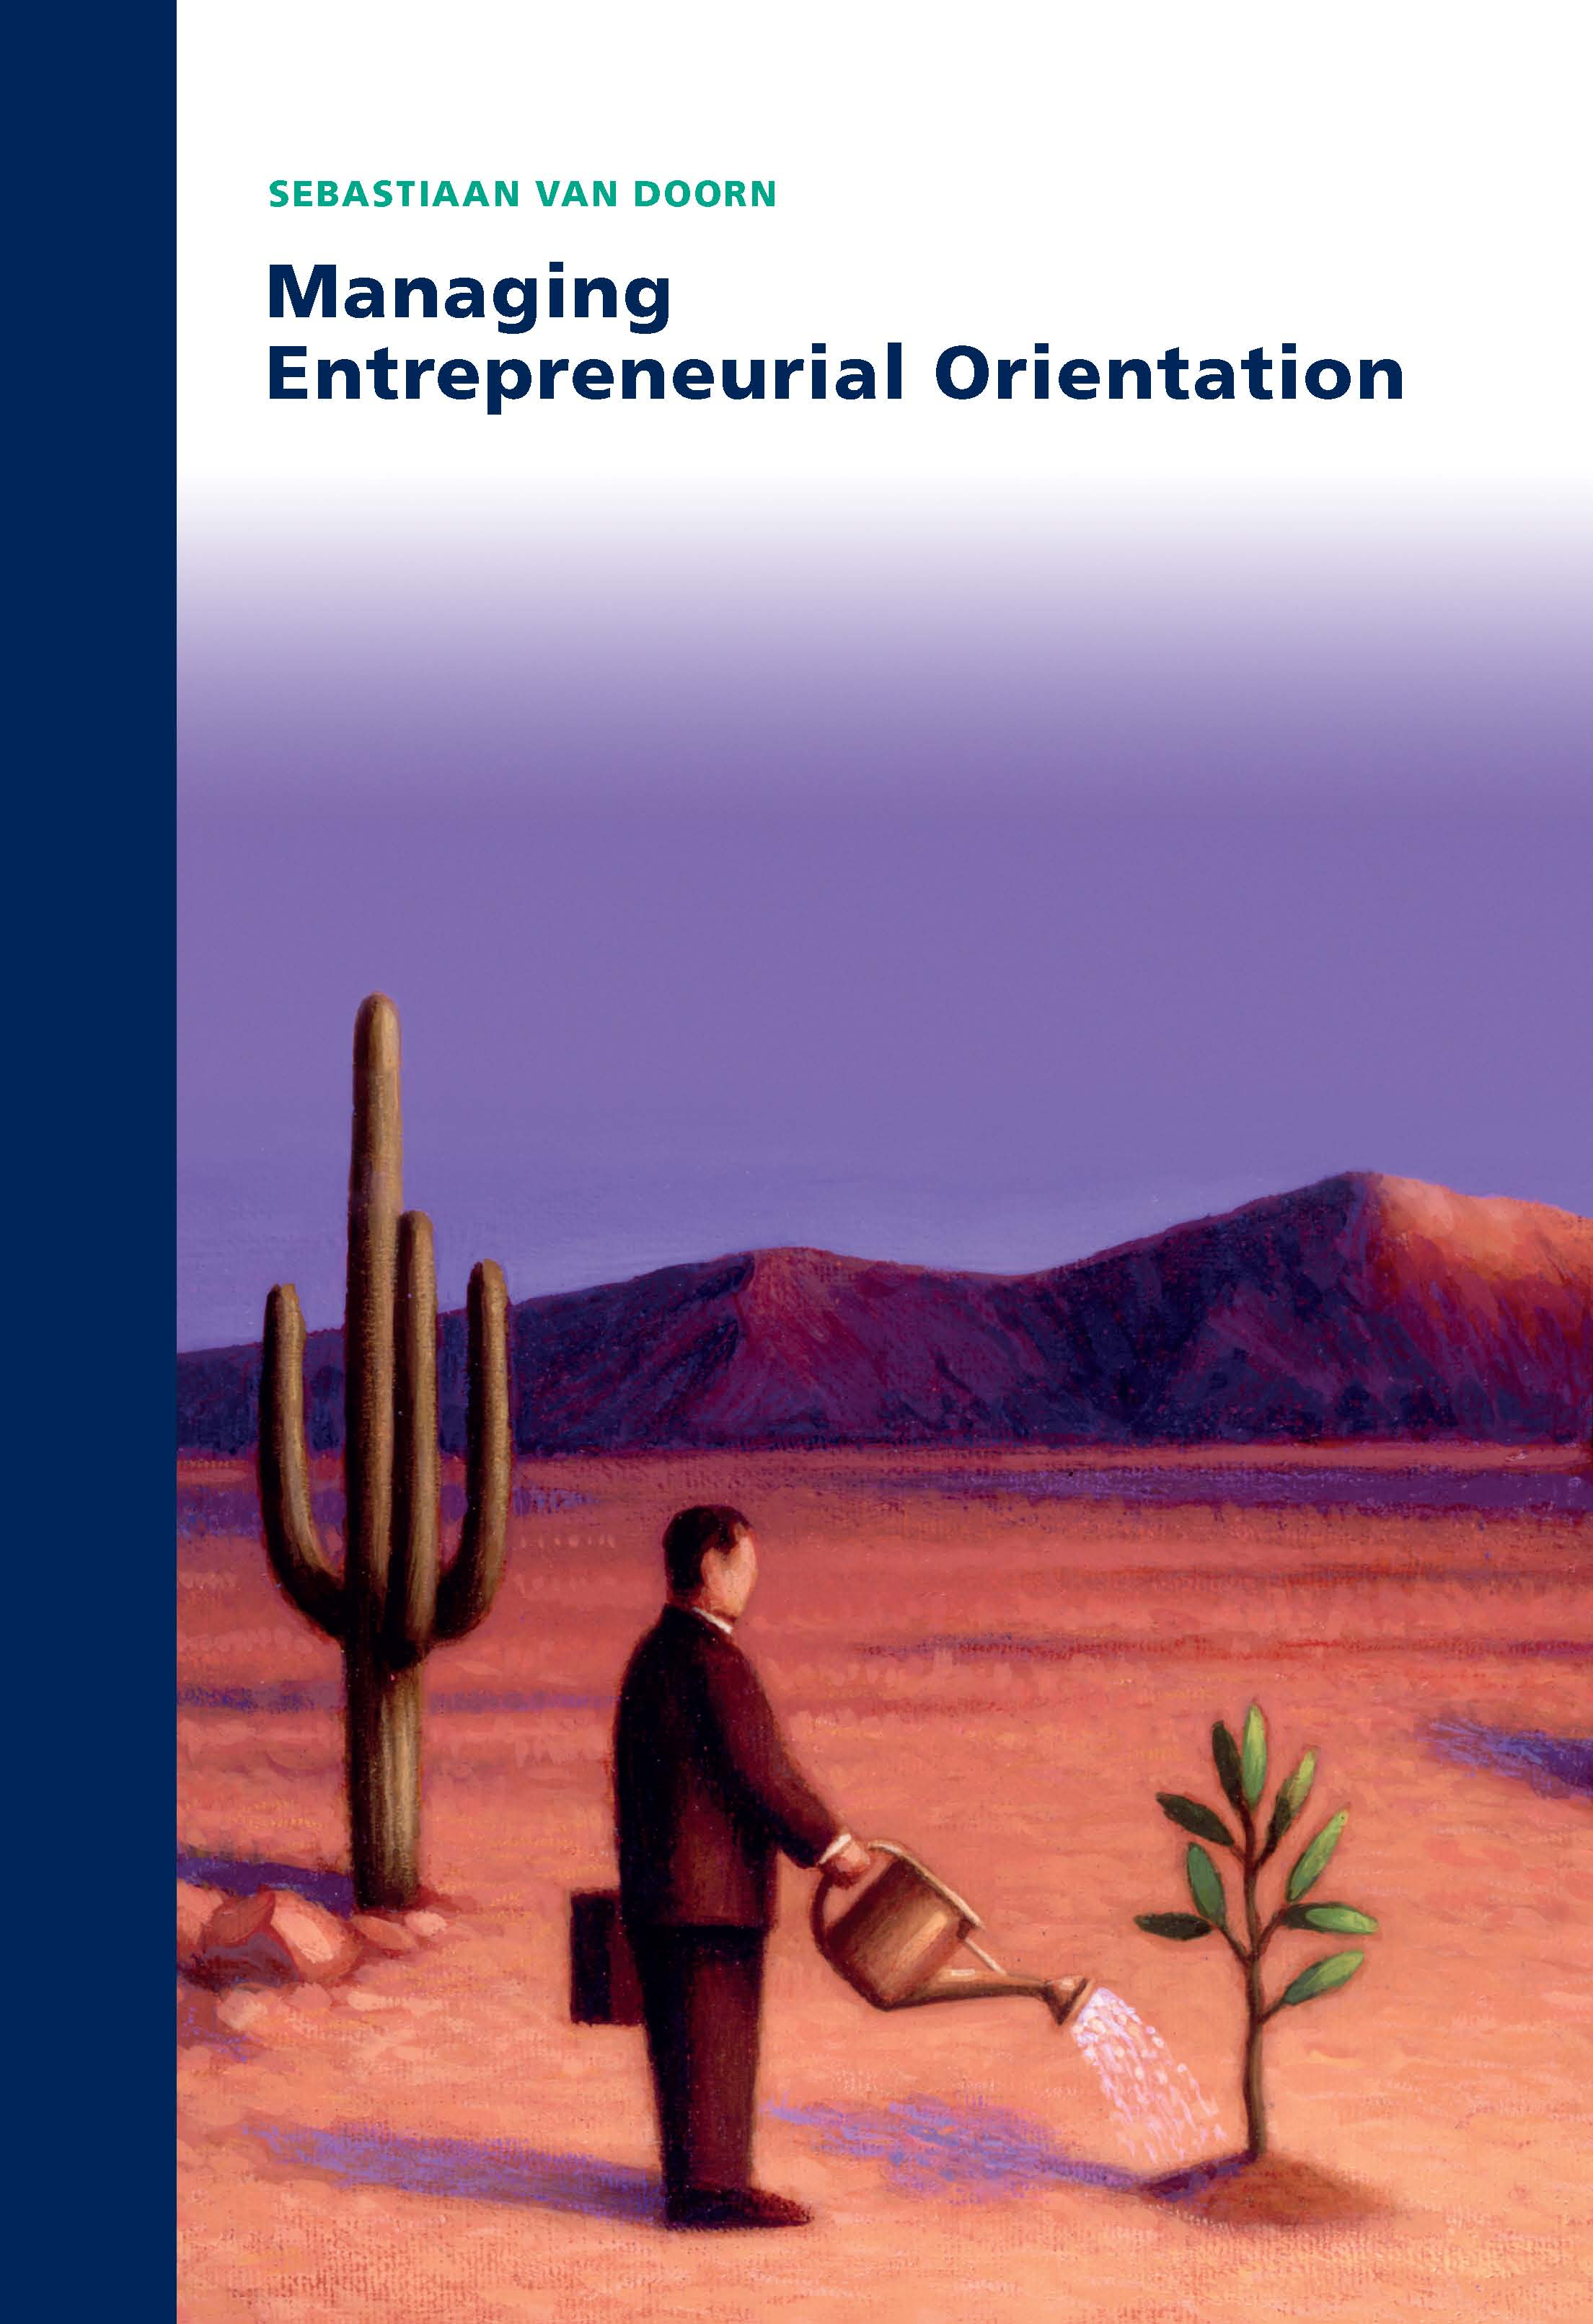 Managing Entrepreneurial Orientation